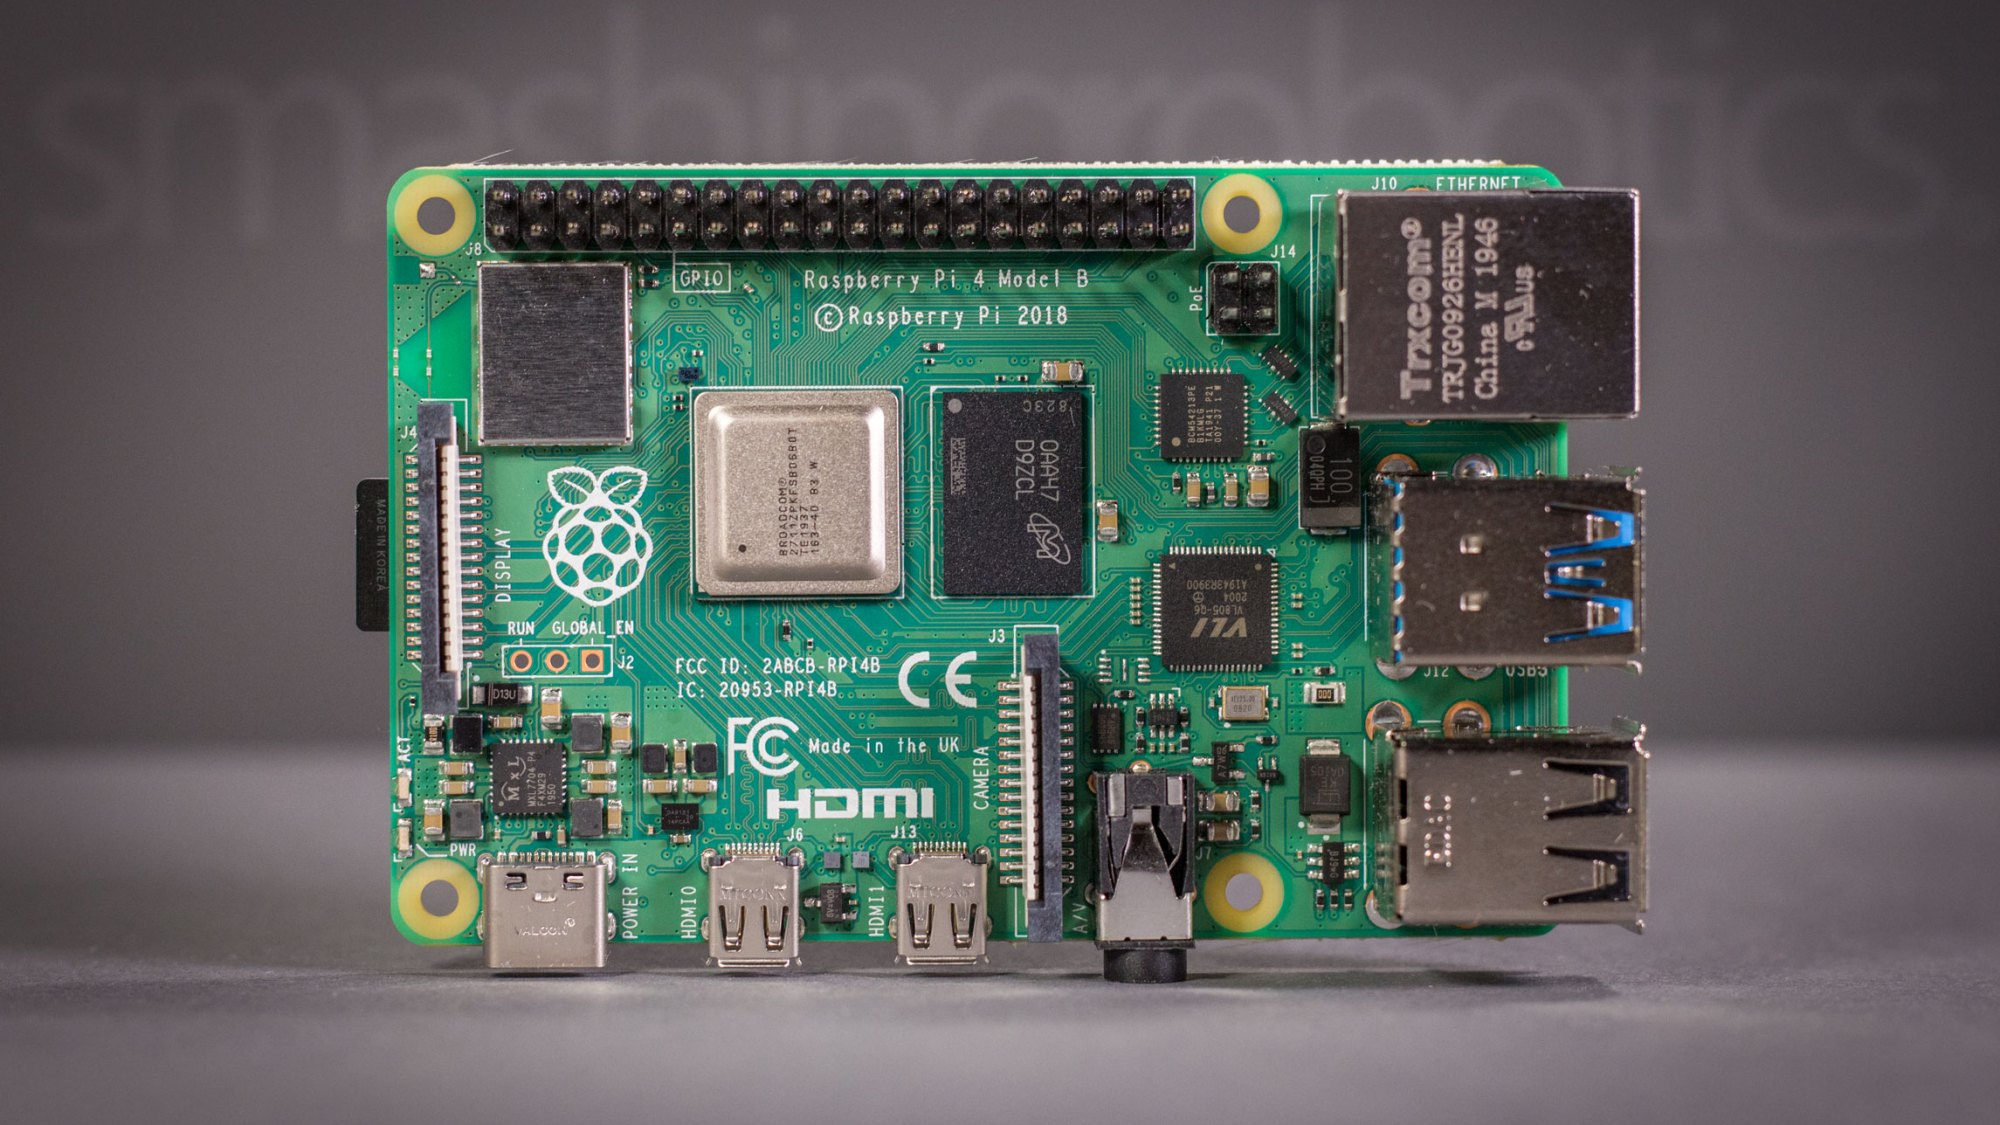 Raspberry Pi 4 model B 8 GB board